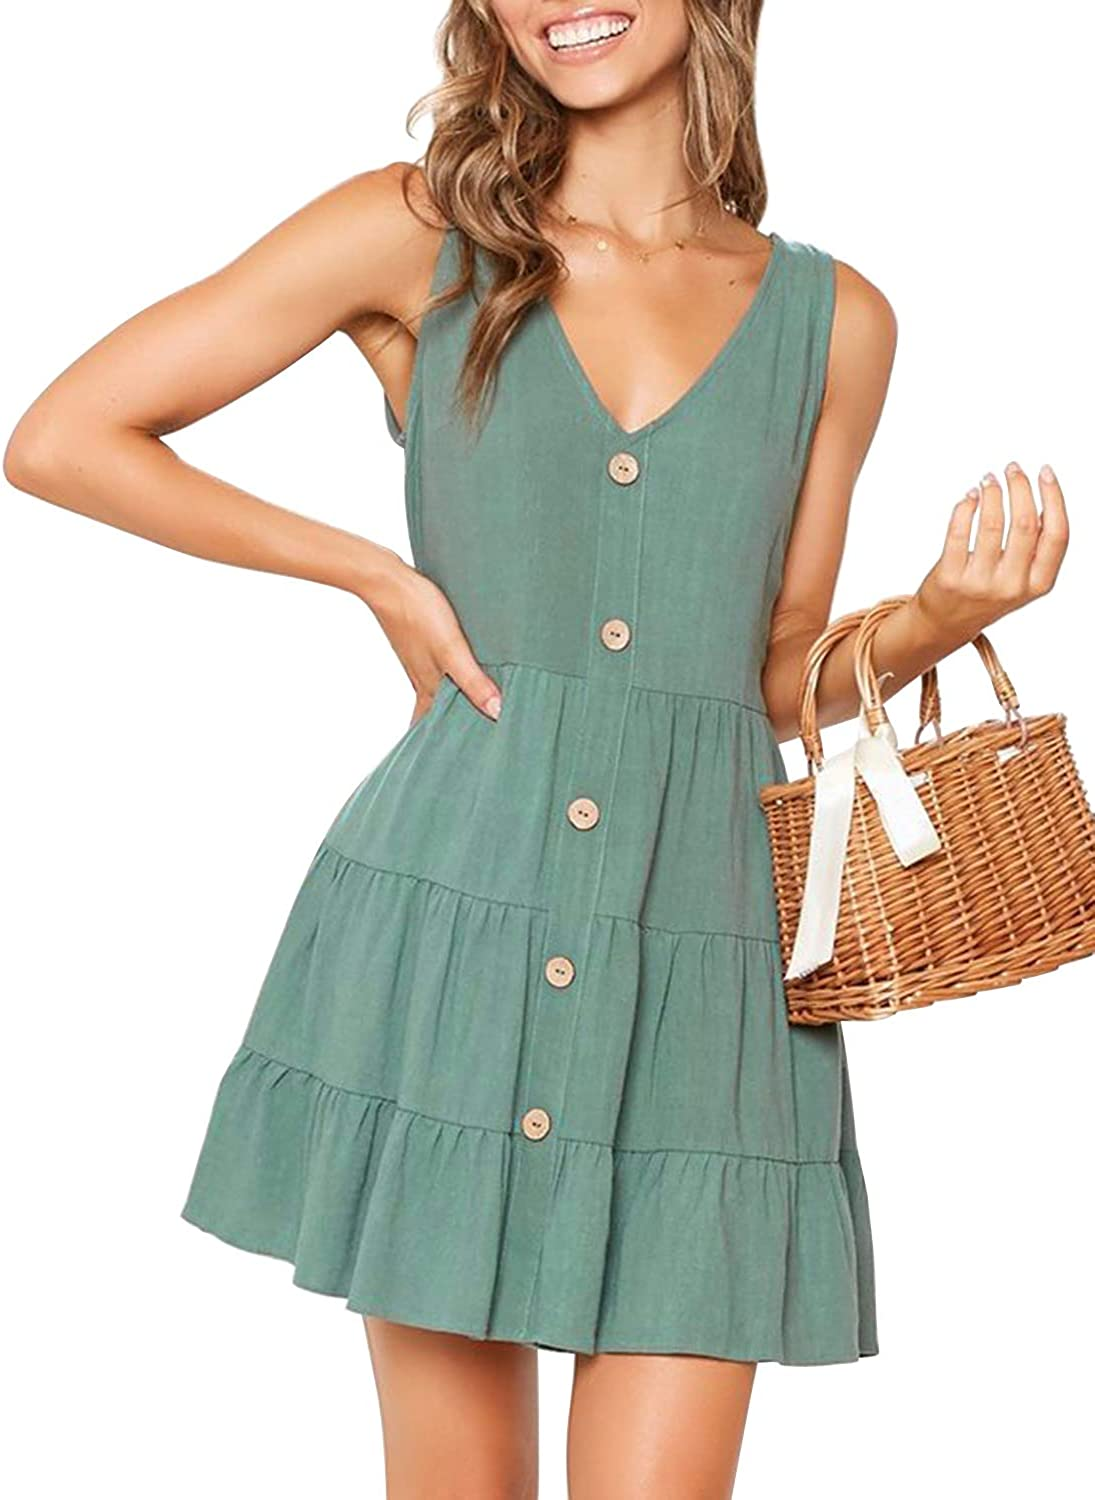 hymyyxgs Women Summer Loose Mid-Calf Long Swing Dress with Pockets Short Sleeve Solid Casual Beach Sundress